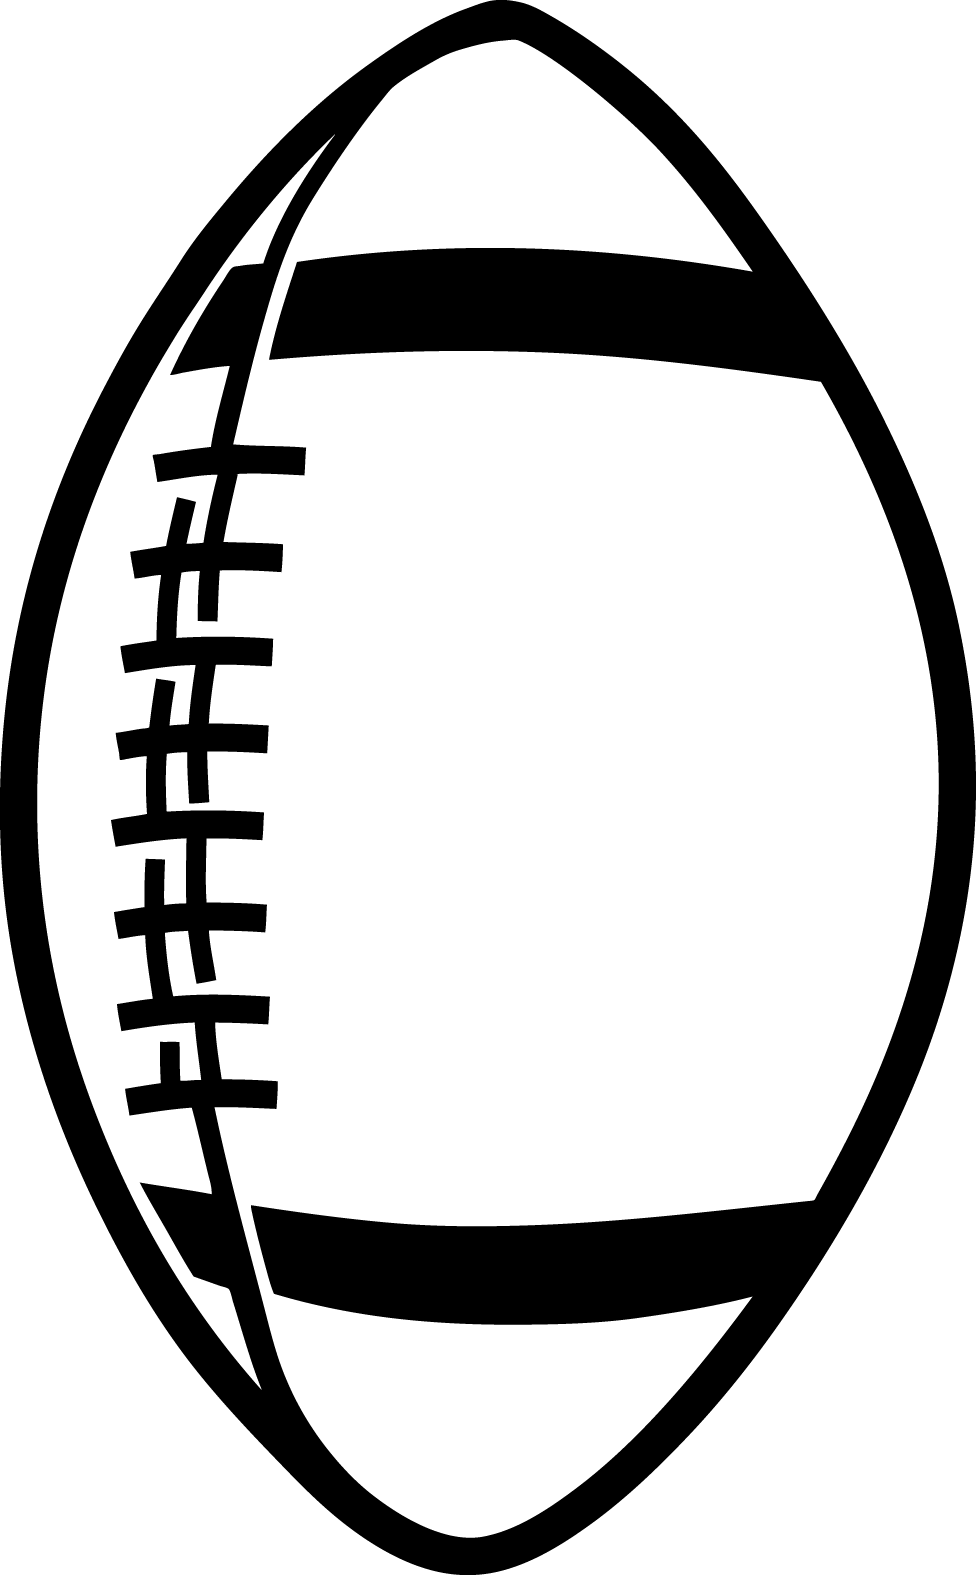 Football Templates - ClipArt Best